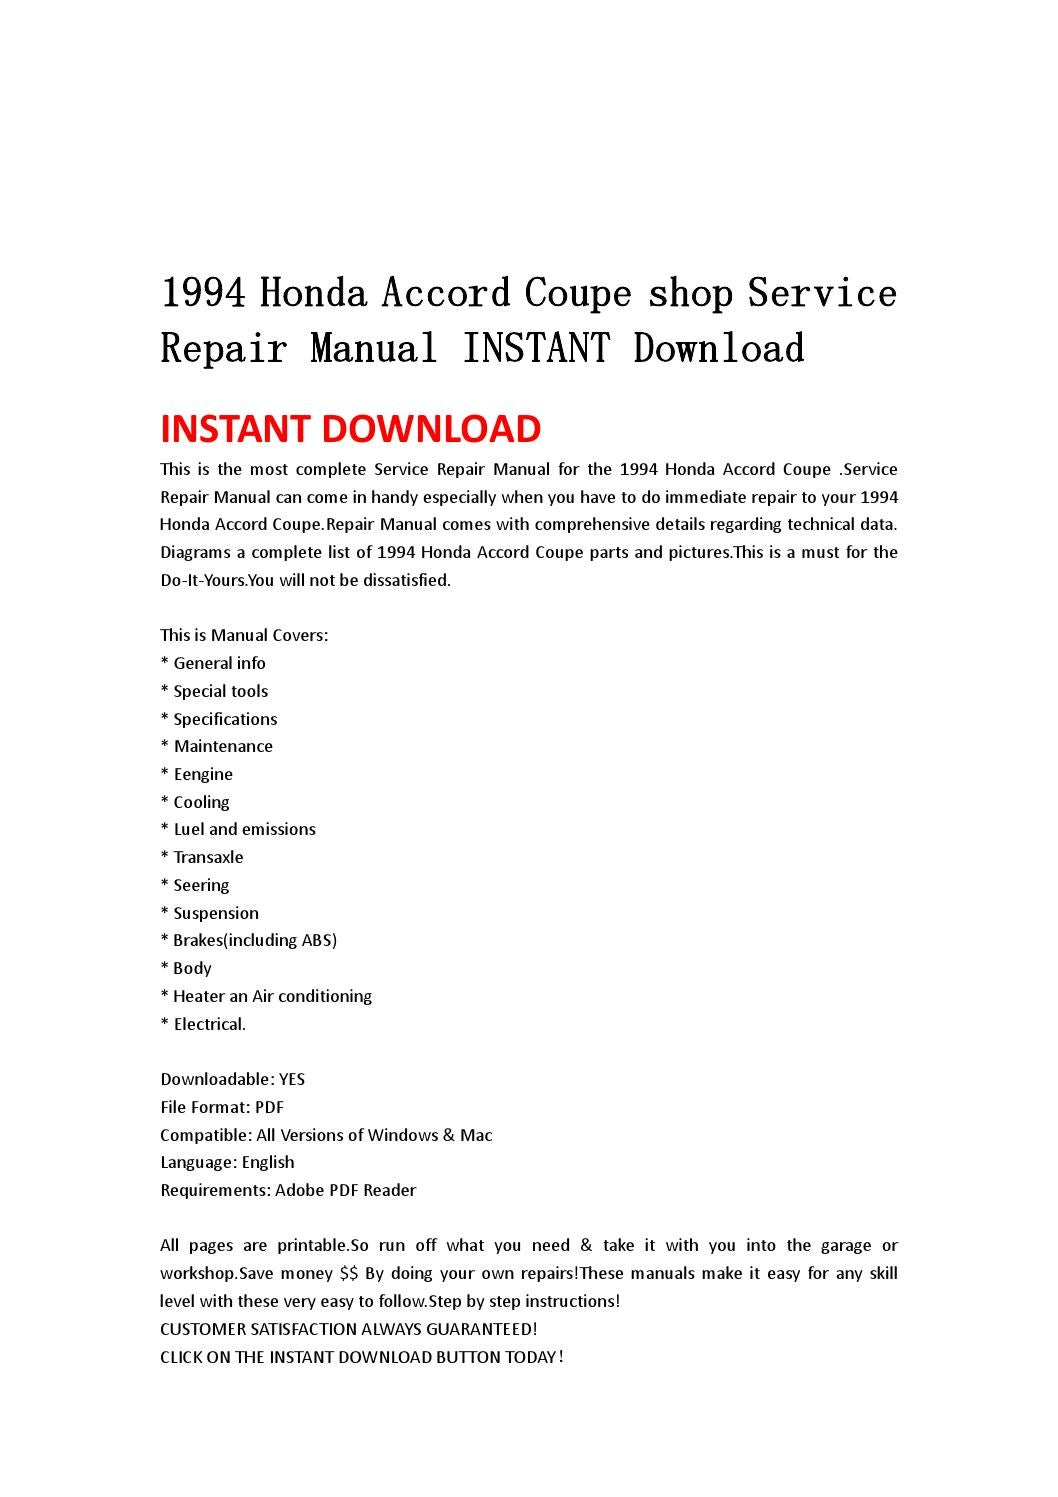 1994 honda accord coupe shop service repair manual instant download by  jnshefjsne - issuu